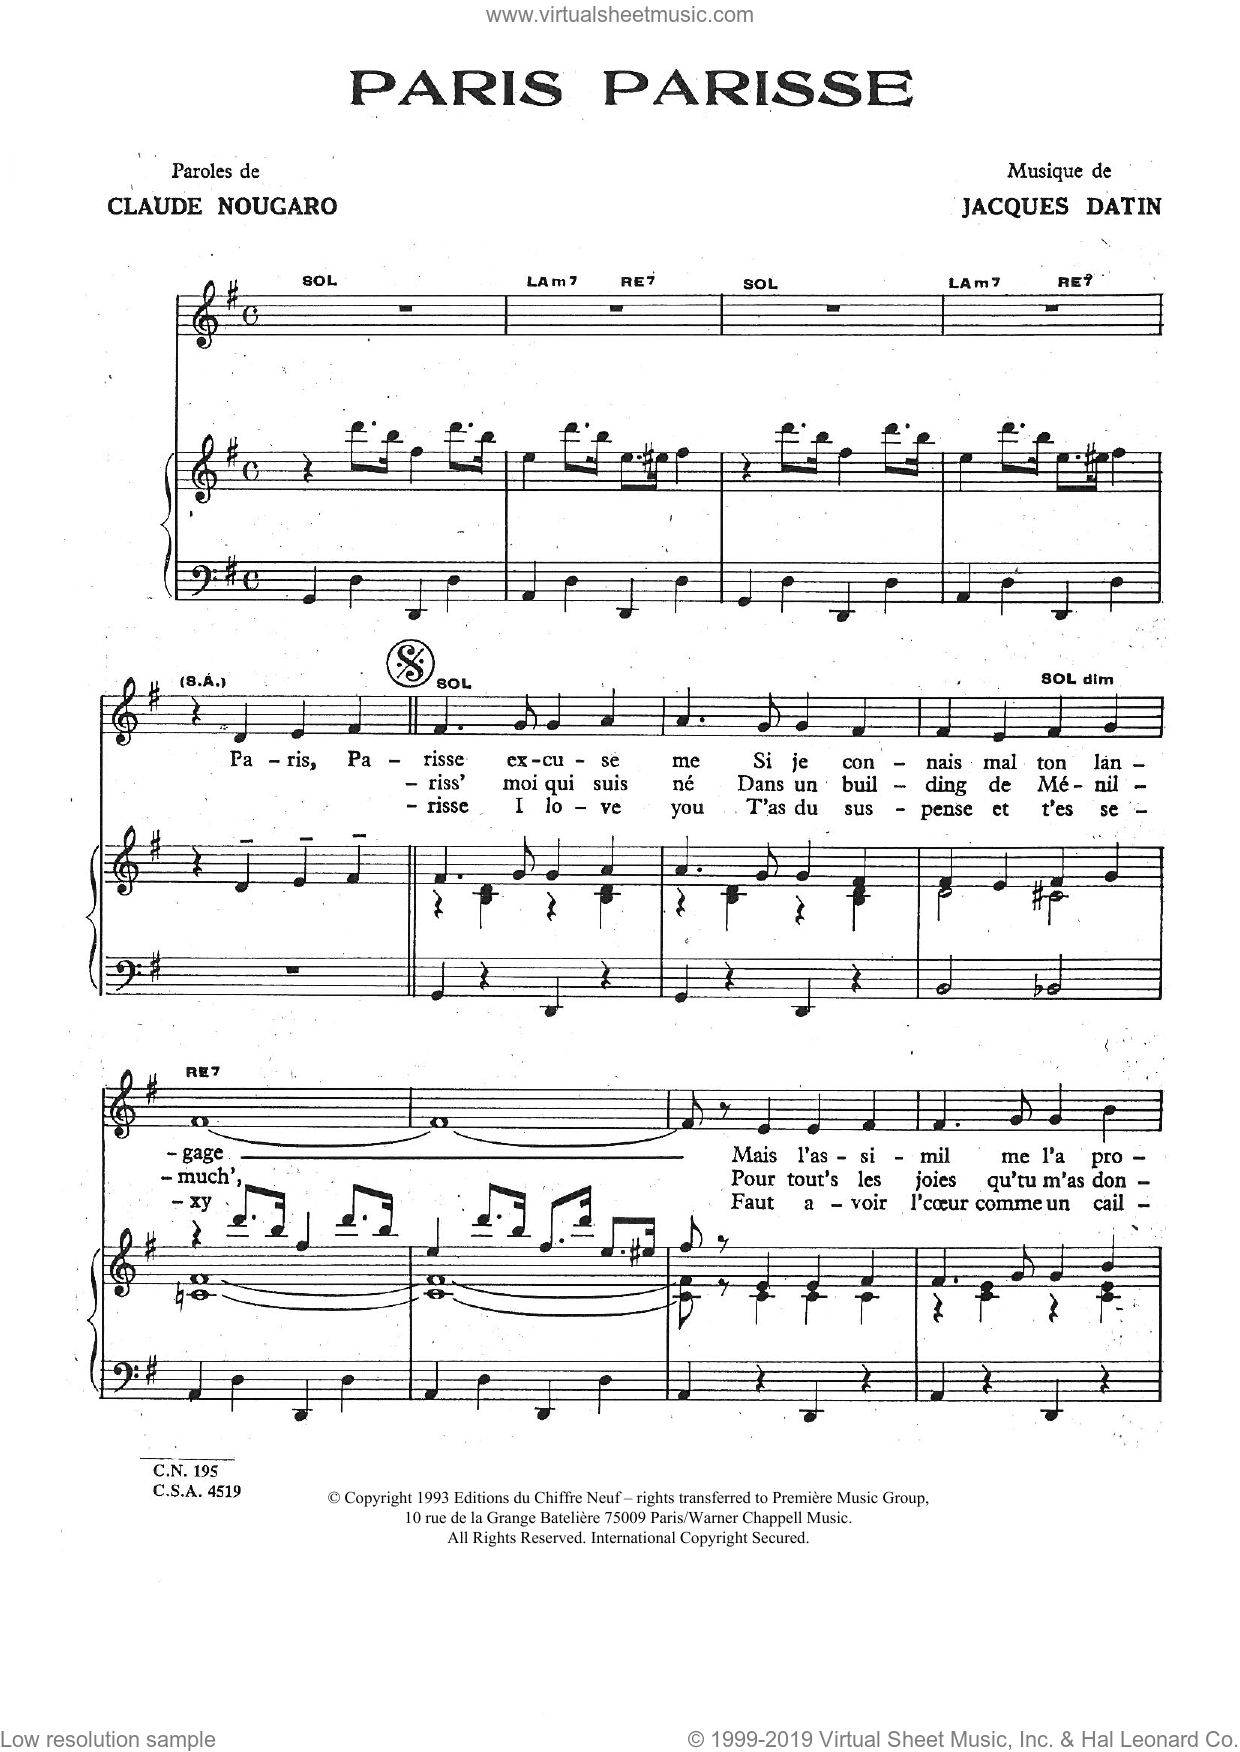 Paris Parisse sheet music for voice and piano by Claude Nougaro. Score Image Preview.